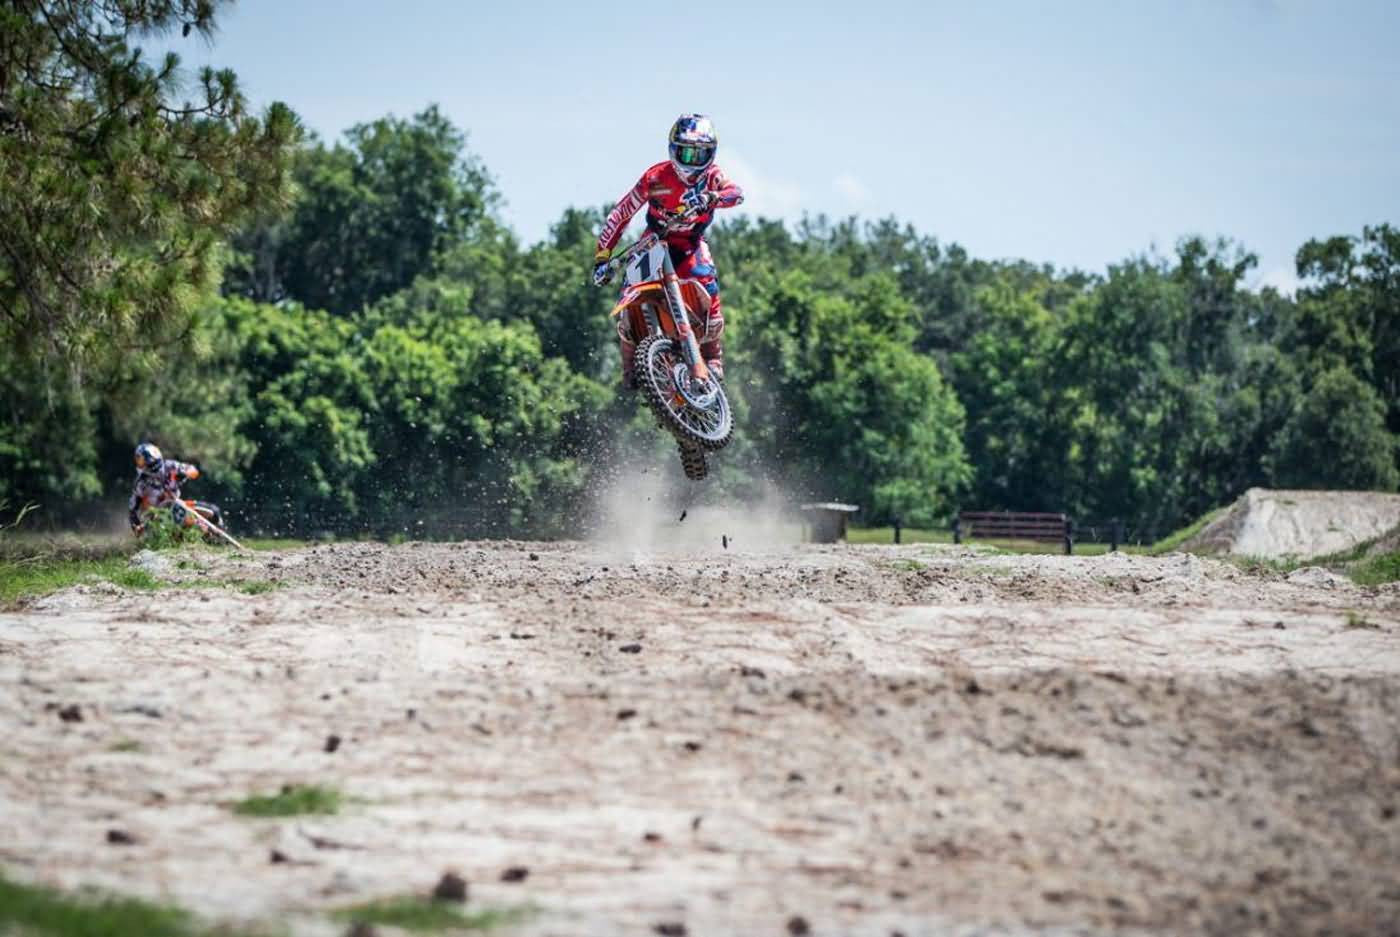 A Day with Motocross and Supercross Champion, Ryan Dungey